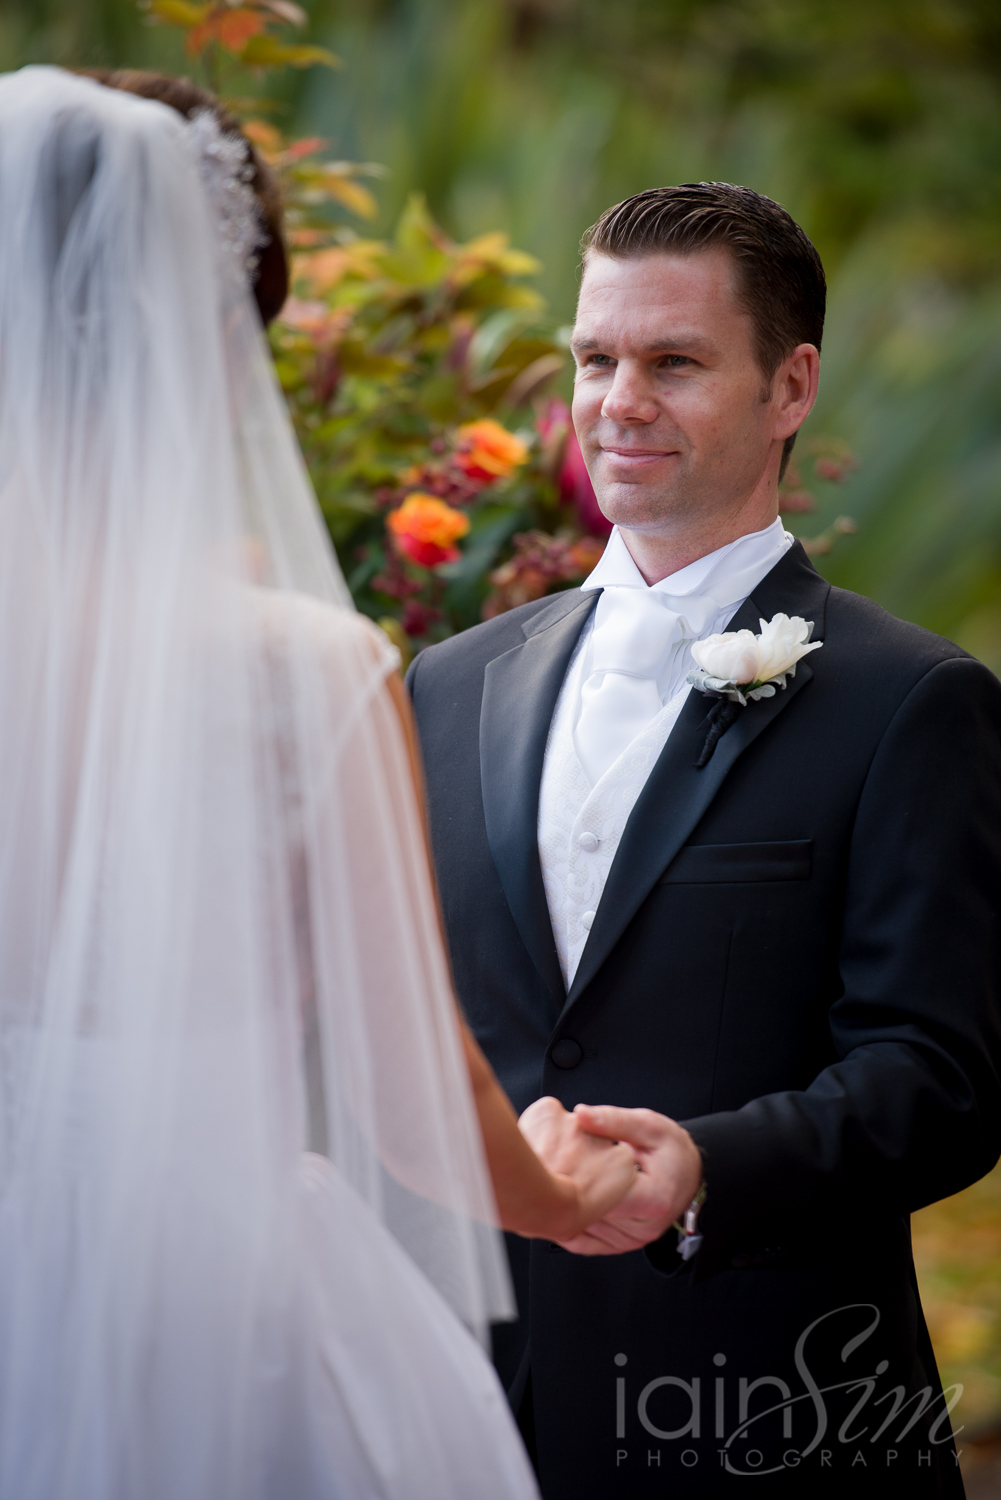 wpid-Katherine-and-Marks-RipponLea-Wedding-by-Iain-Sim-Photography_016.jpg